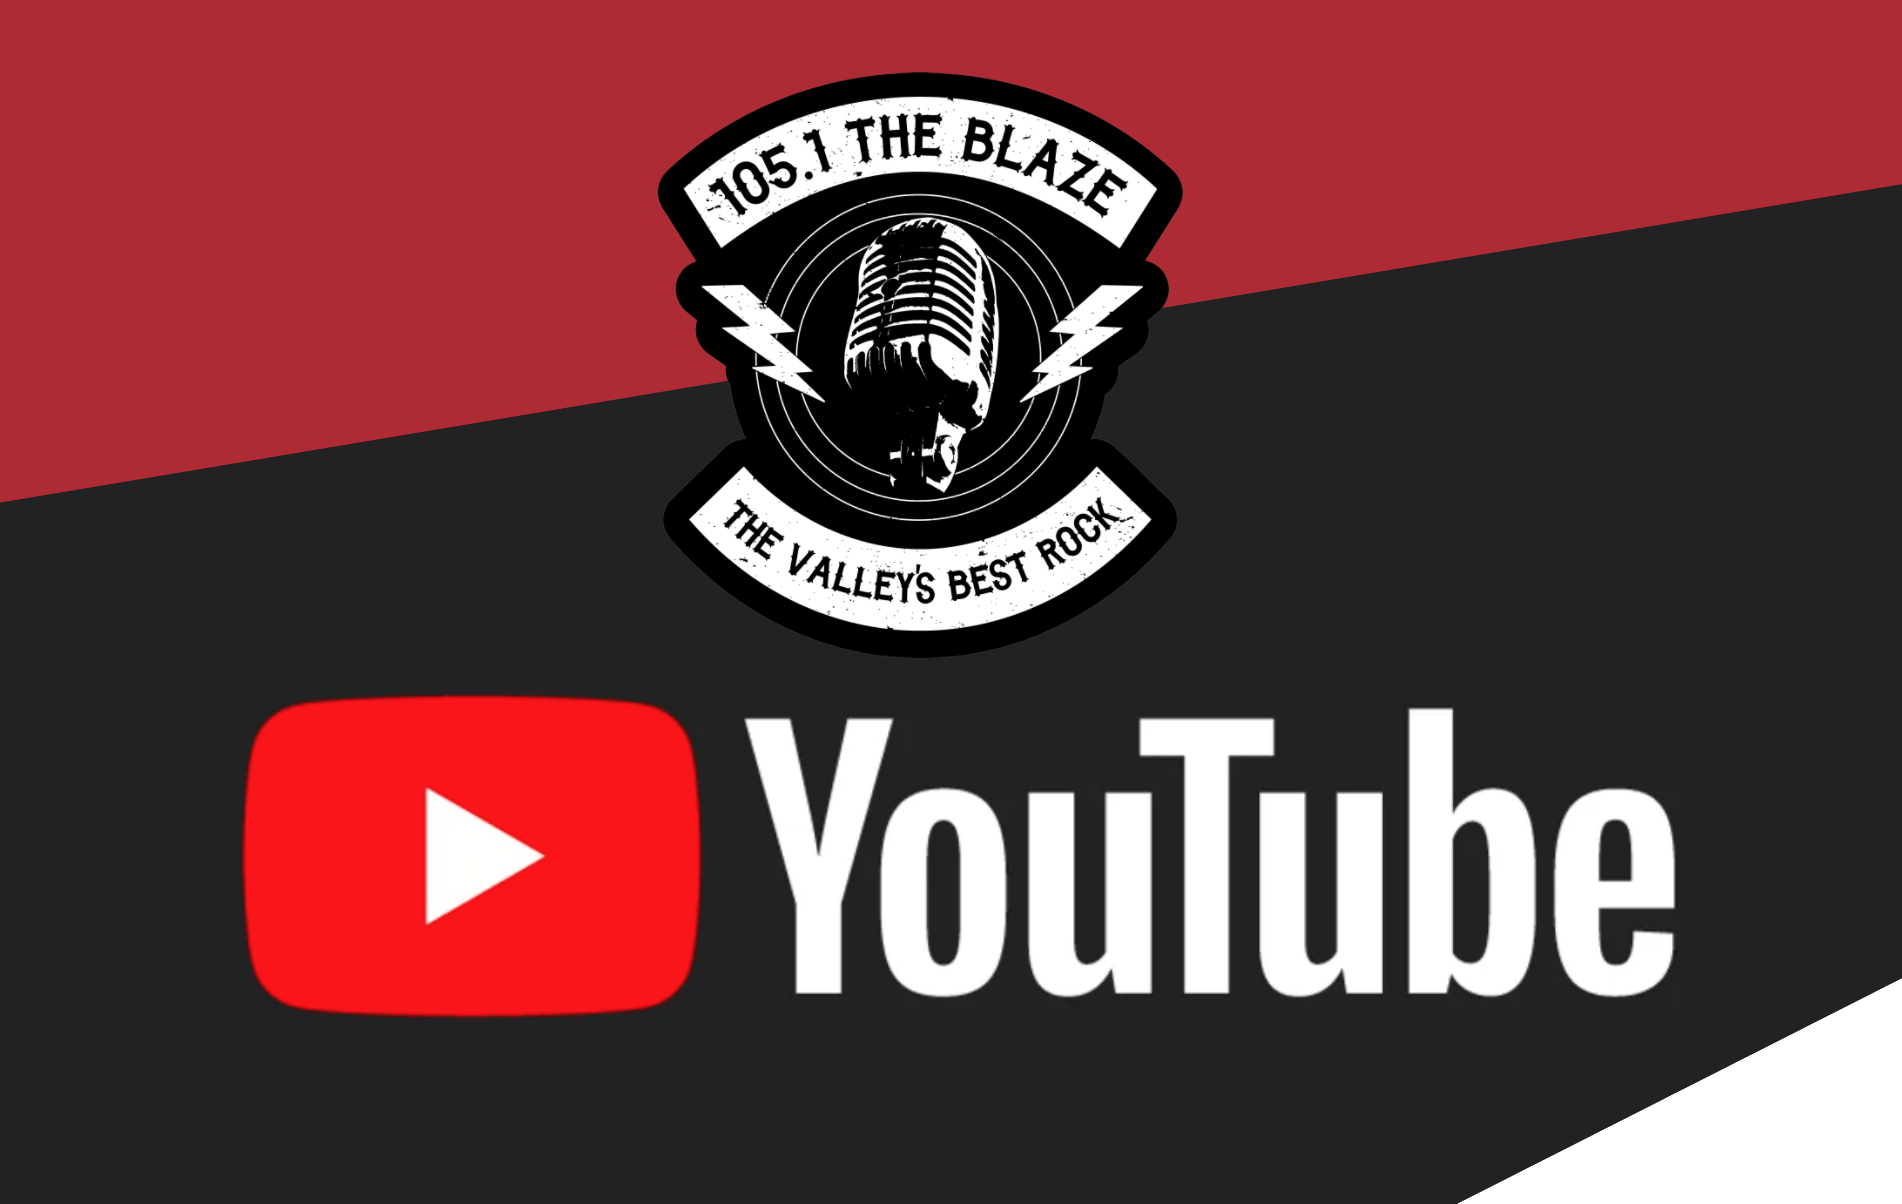 105.1 THE BLAZE YOUTUBE